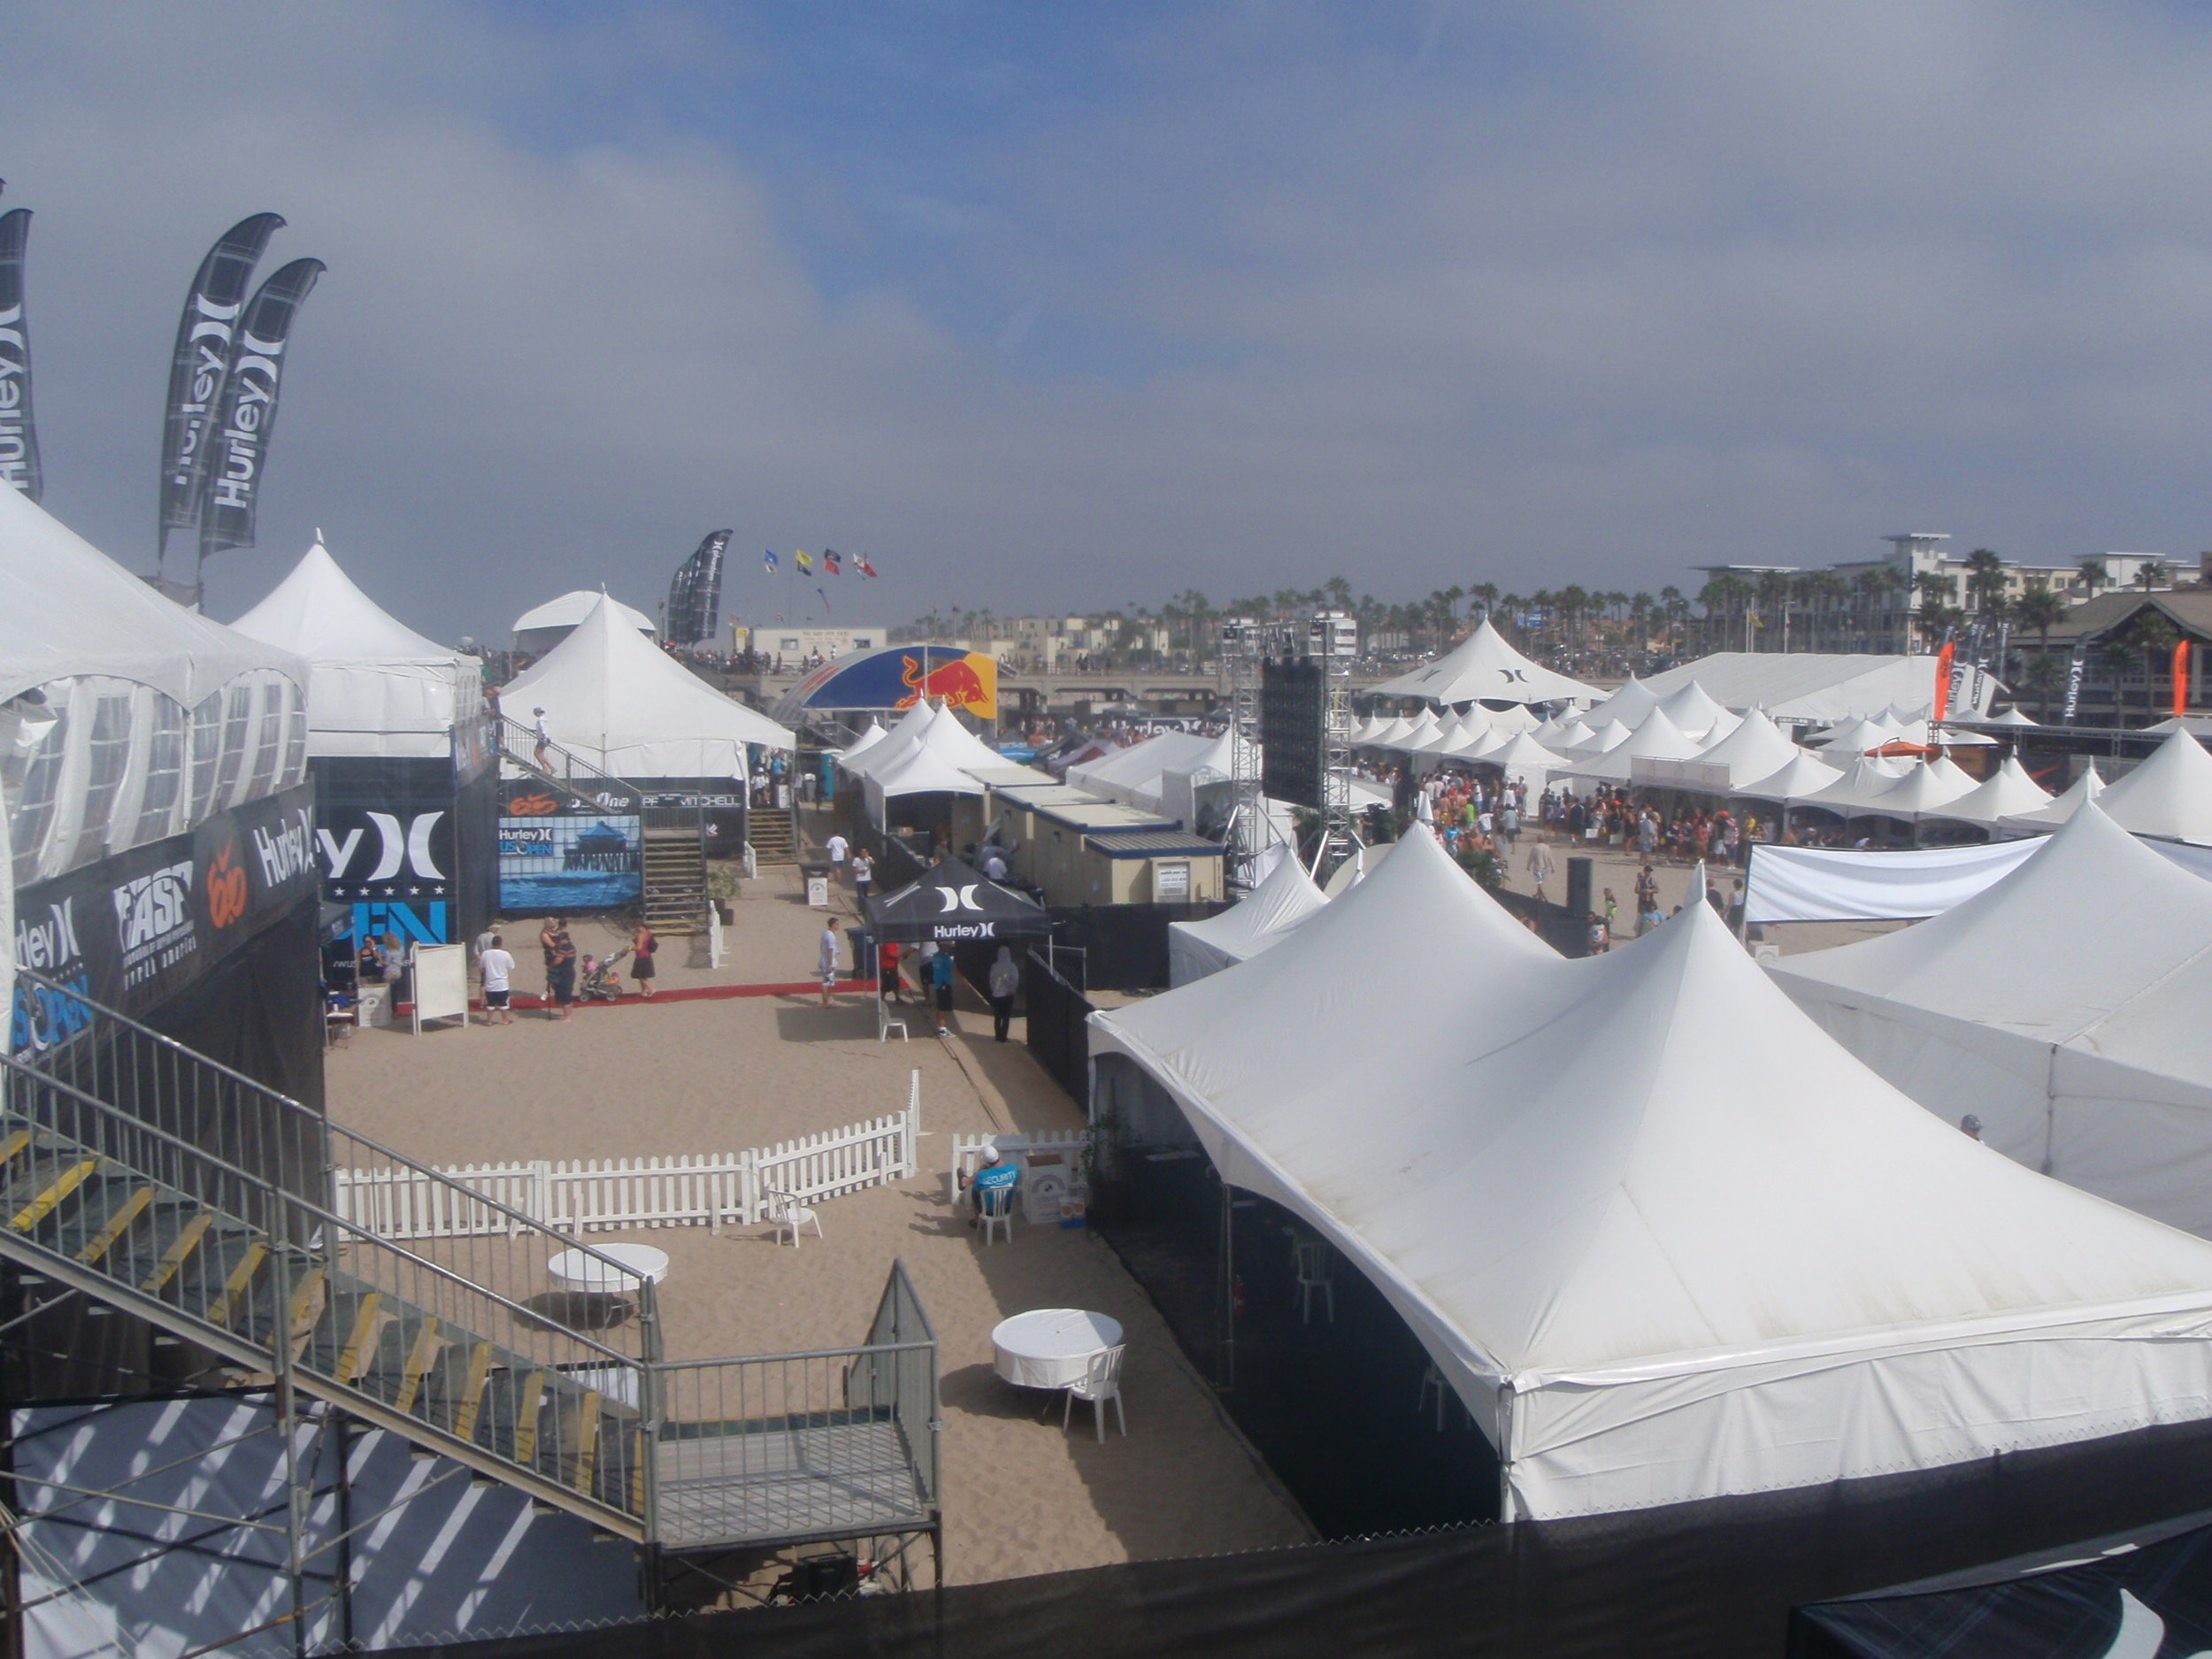 US Open of Surfing 2010_2.jpg